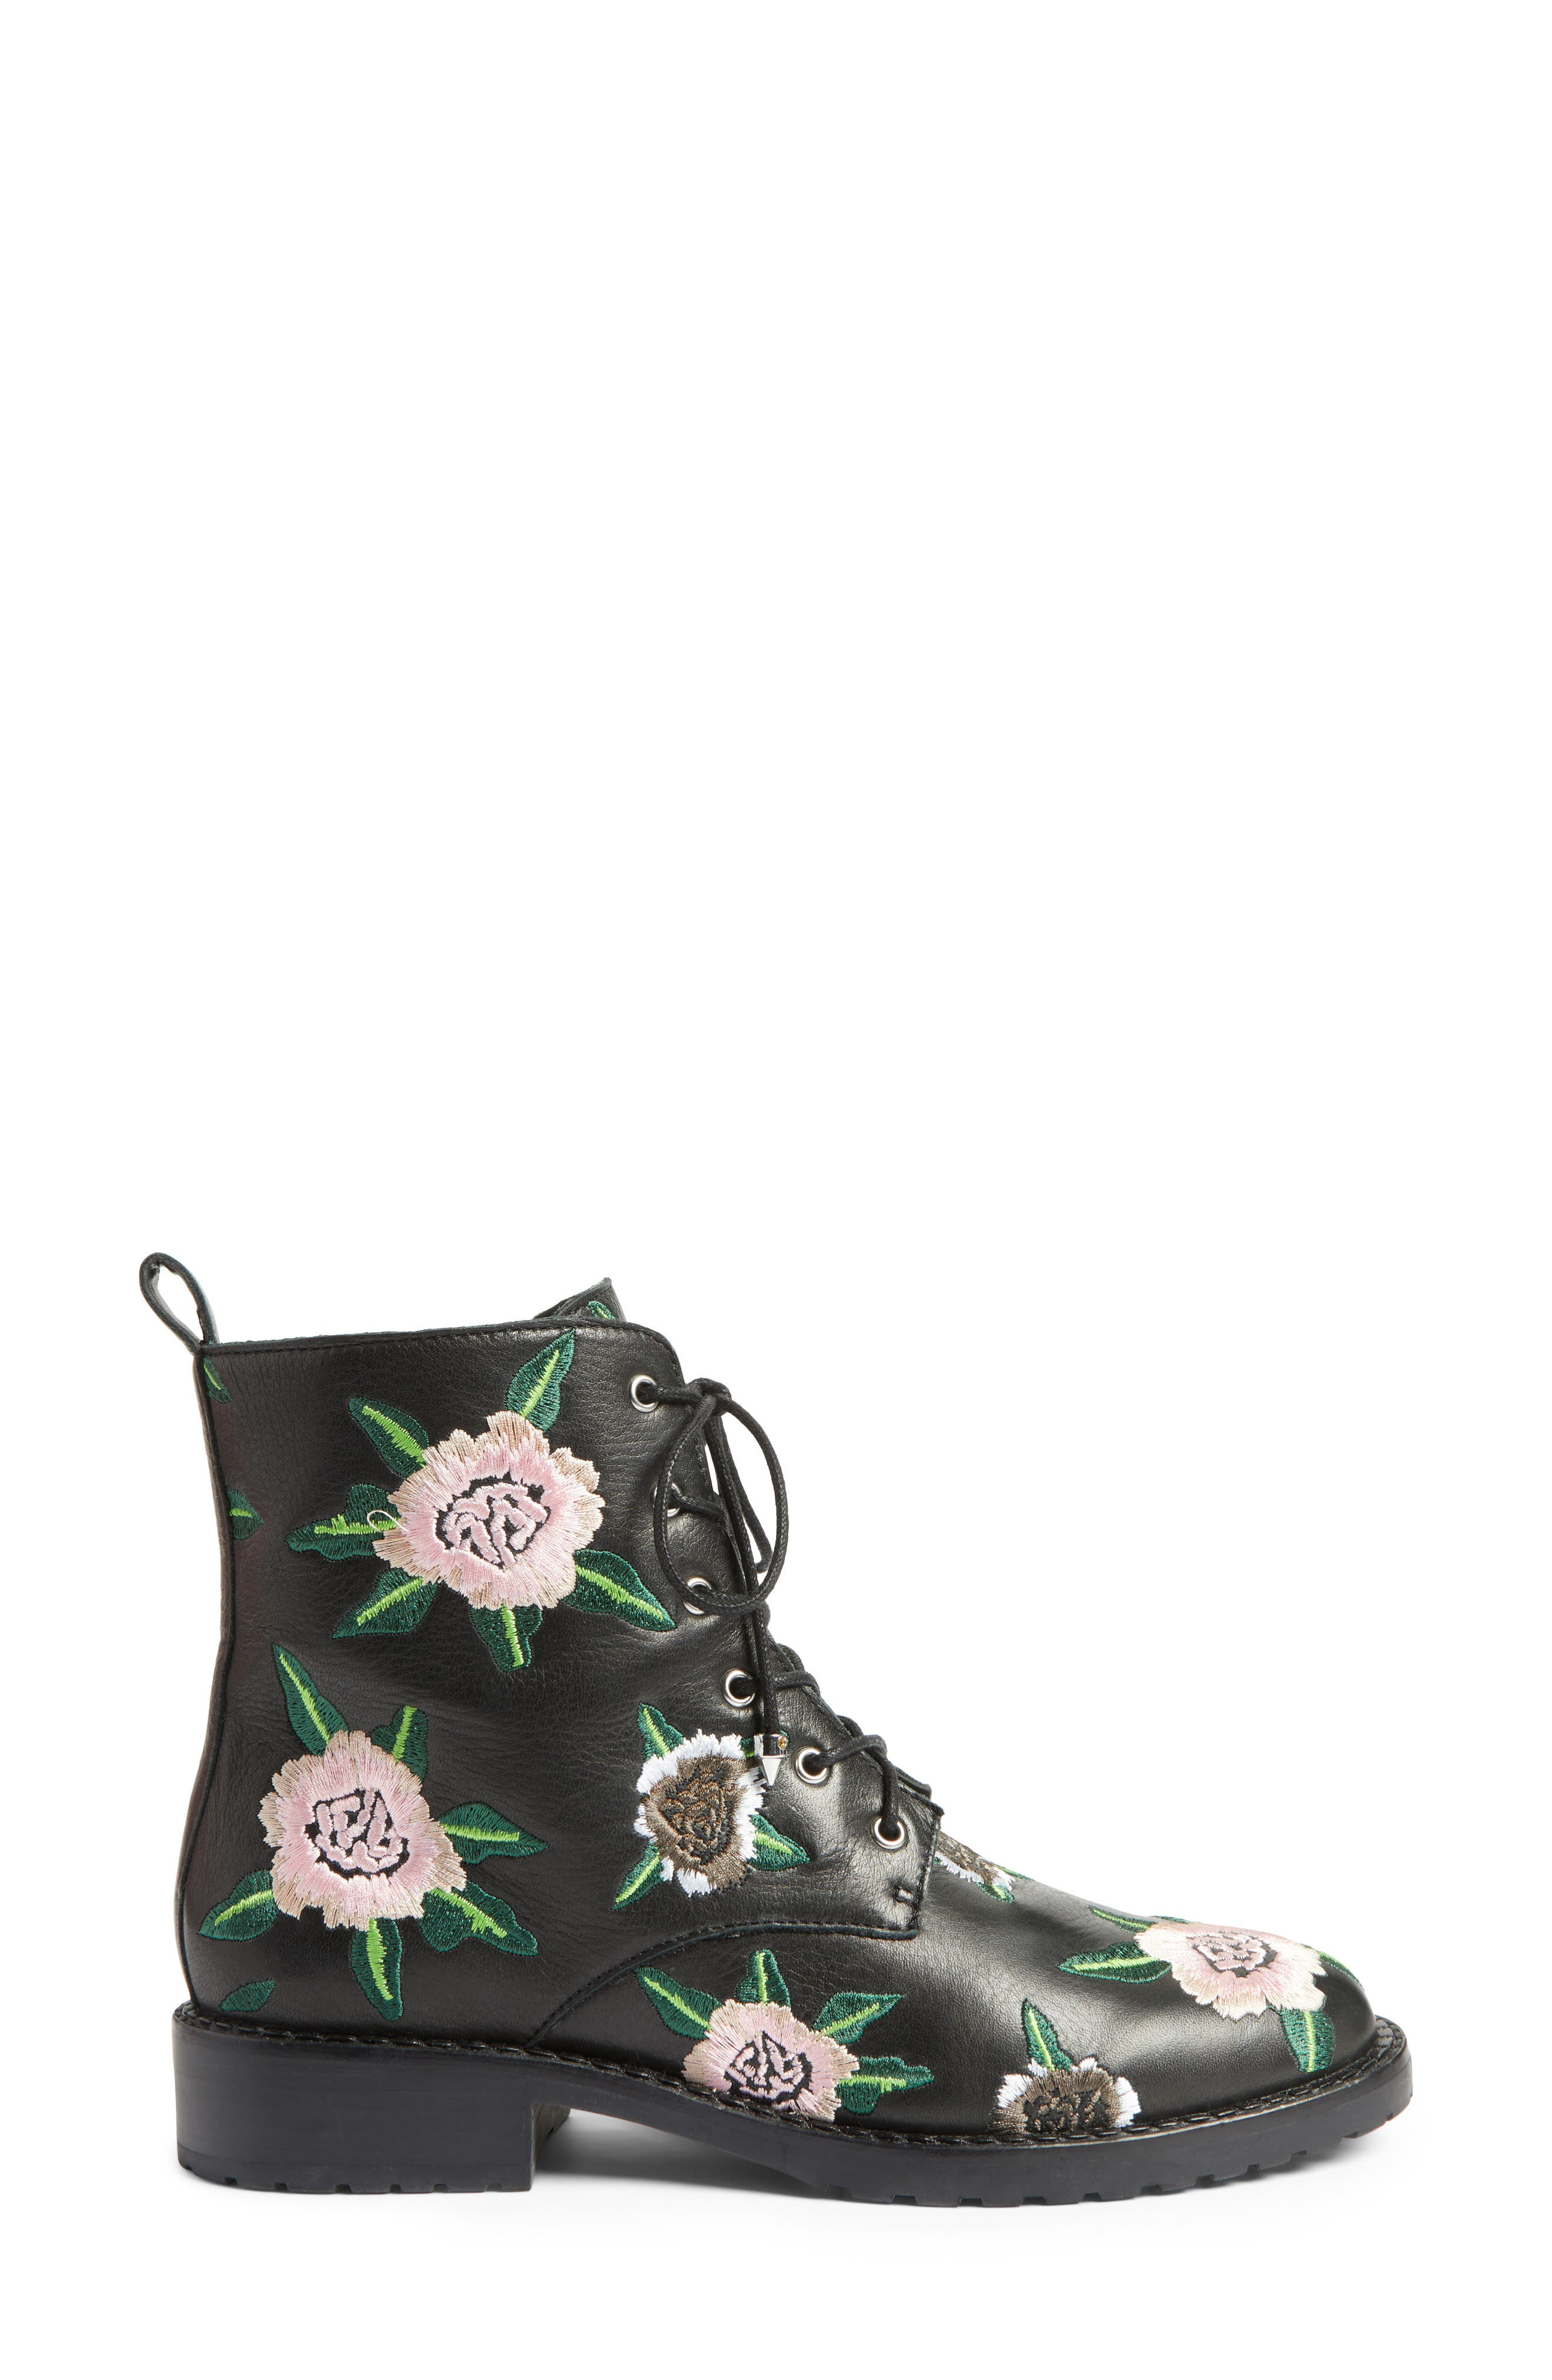 Gerry Embroidered Lace-Up Boot,                             Alternate thumbnail 3, color,                             001